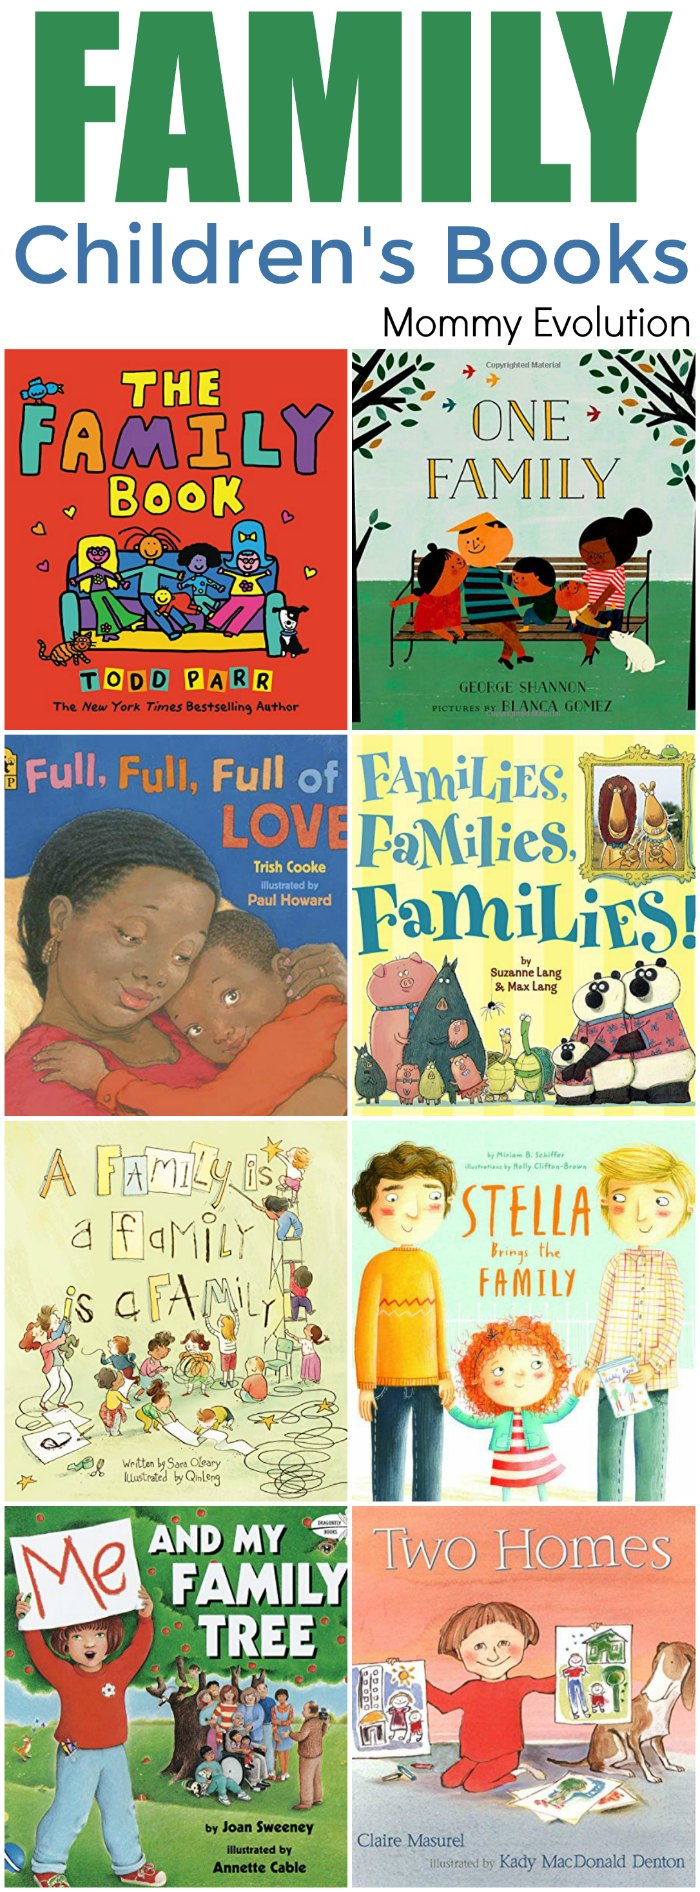 Childrens Books about Family - Diverse families and books for kids | Mommy Evolution